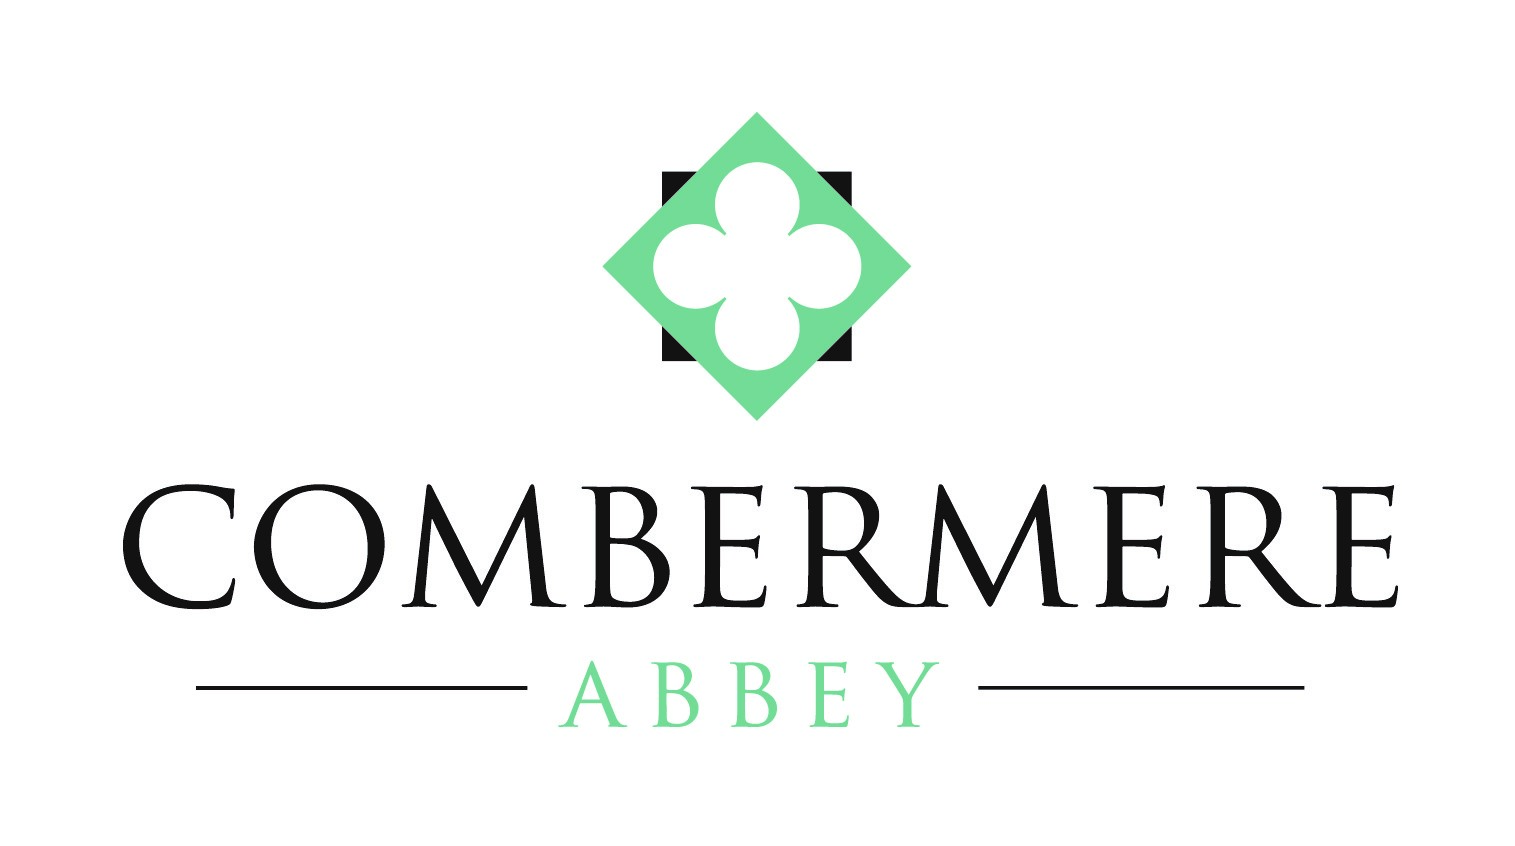 Number One London: STAY A WHILE AT HISTORIC COMBERMERE ABBEY